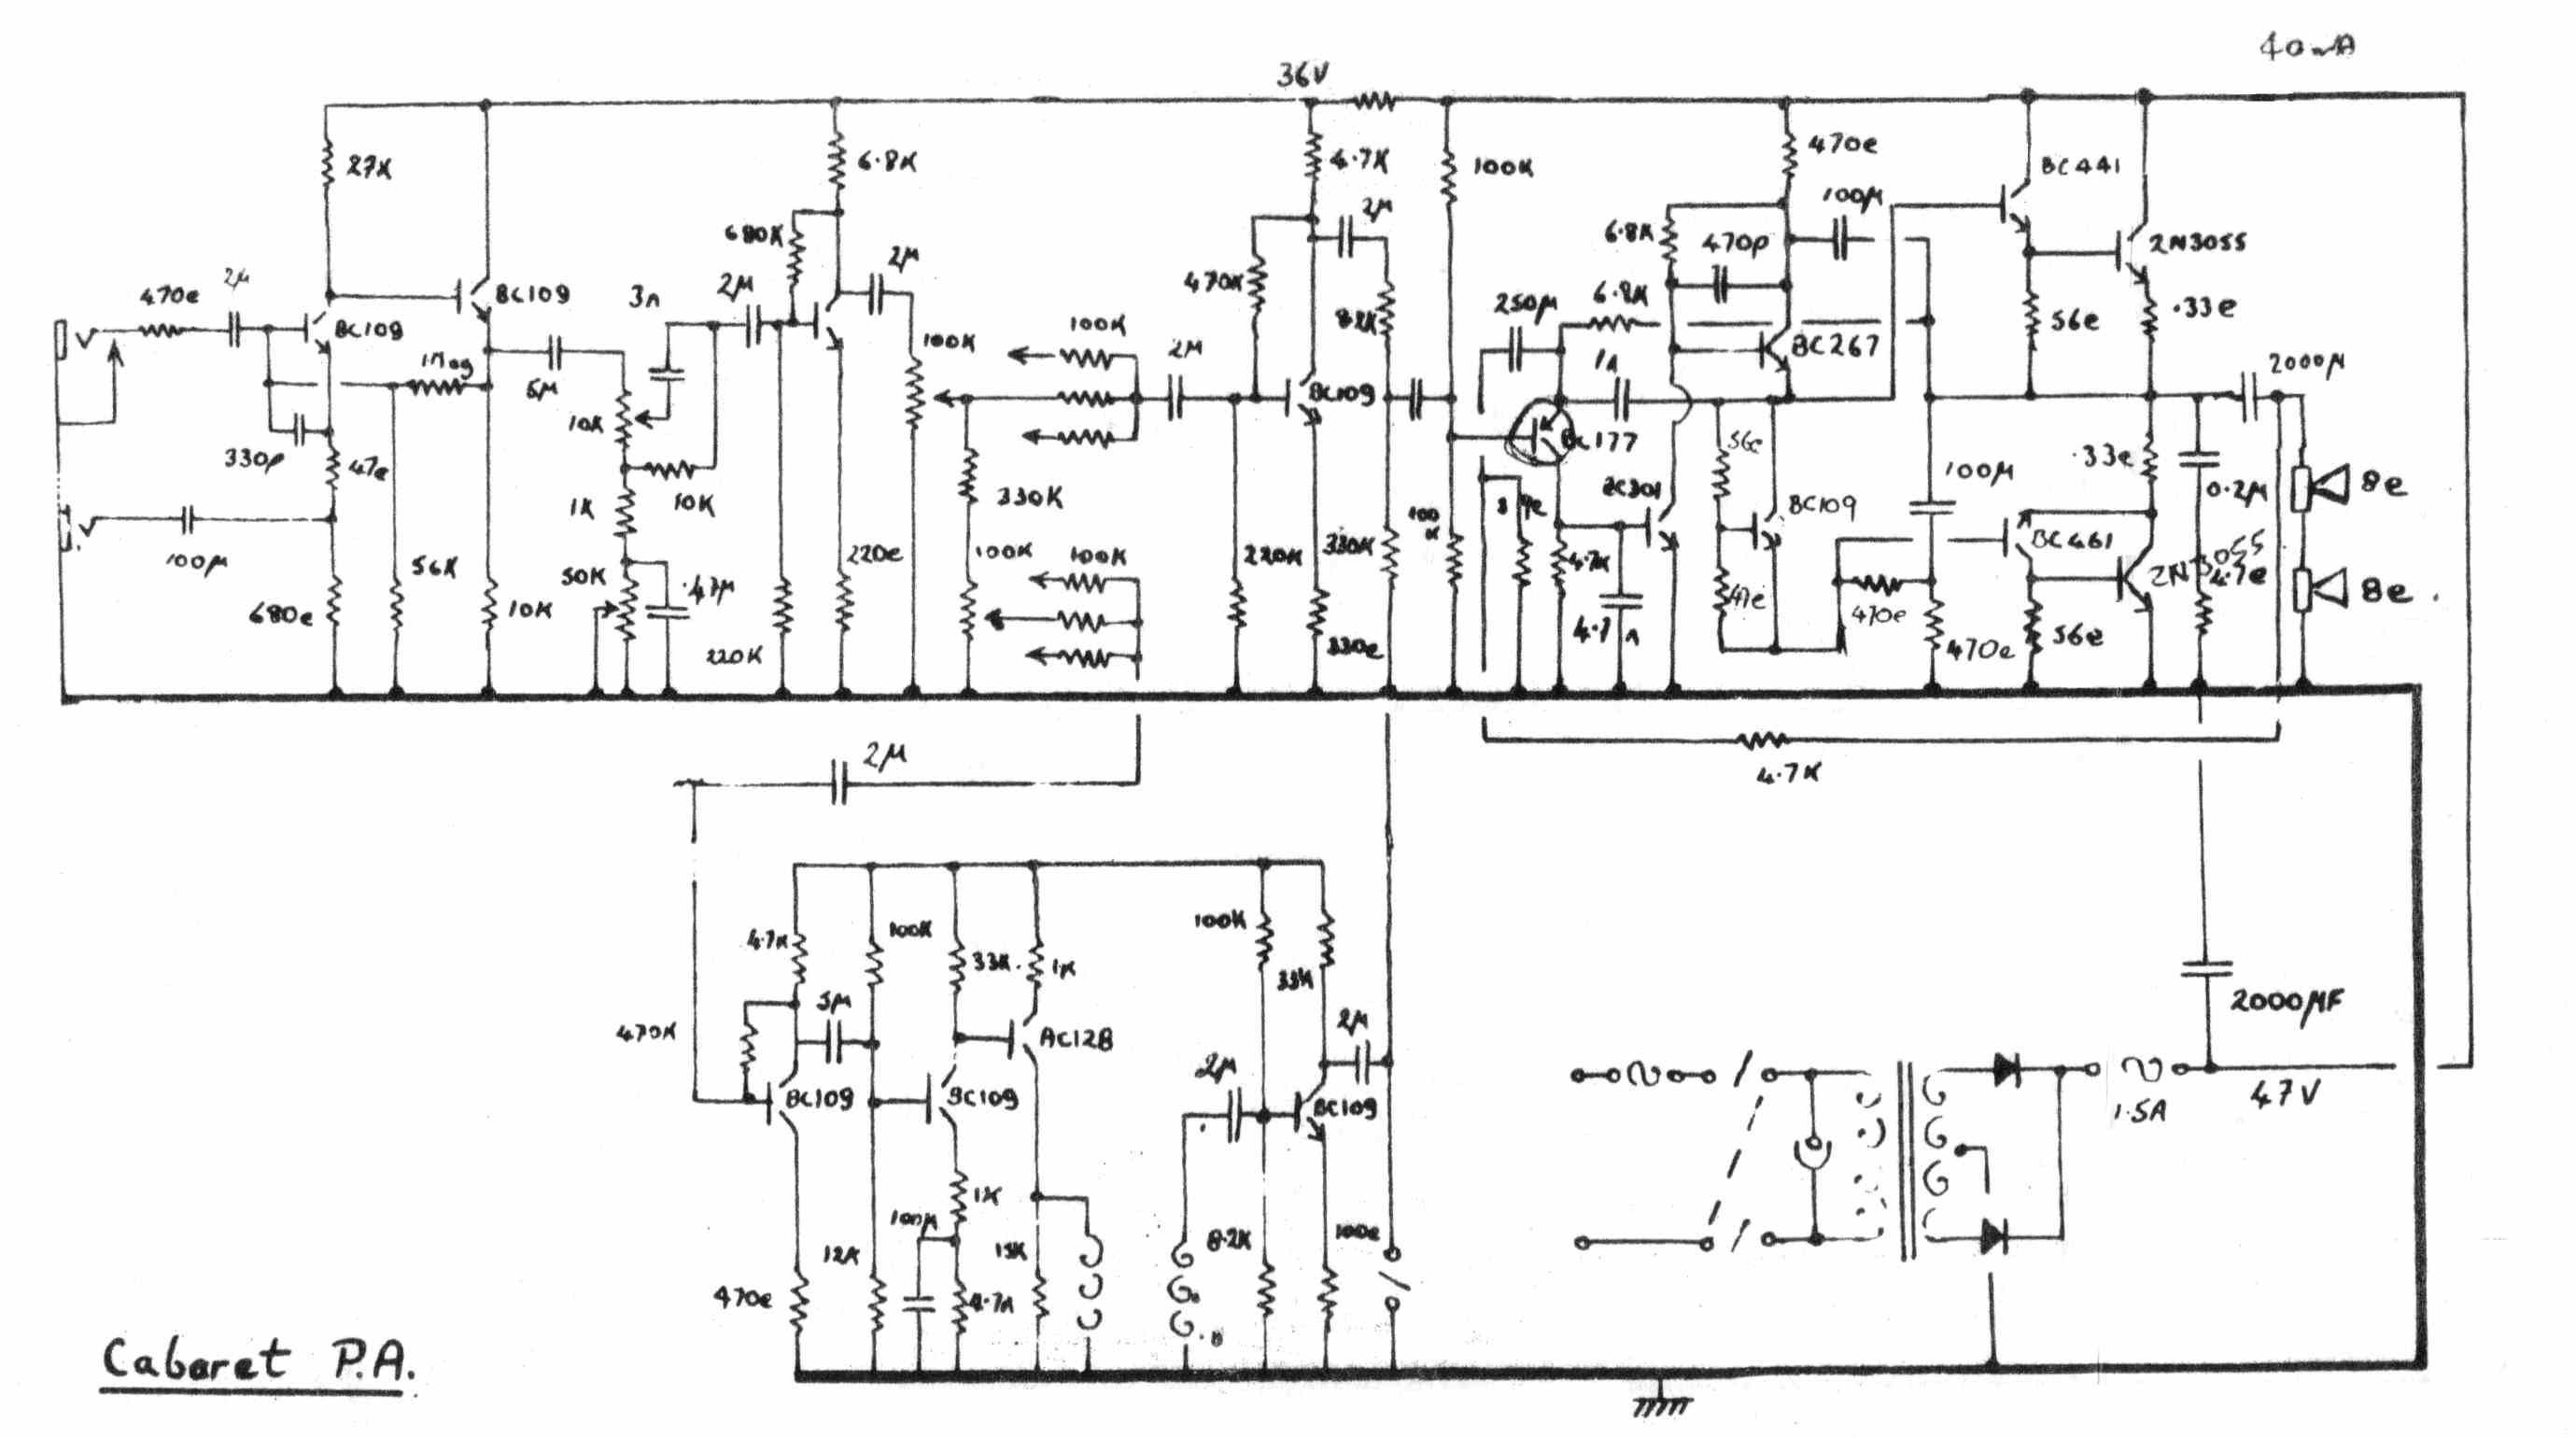 Fender Vibro Ch  Schematic together with 1975 Tremolo Unit Schematic Diy Pedal Analogue also LIght Activated Switch Circuit L56029 moreover Yesanother Diy Pedal Pusher as well s. on tremolo circuit schematic